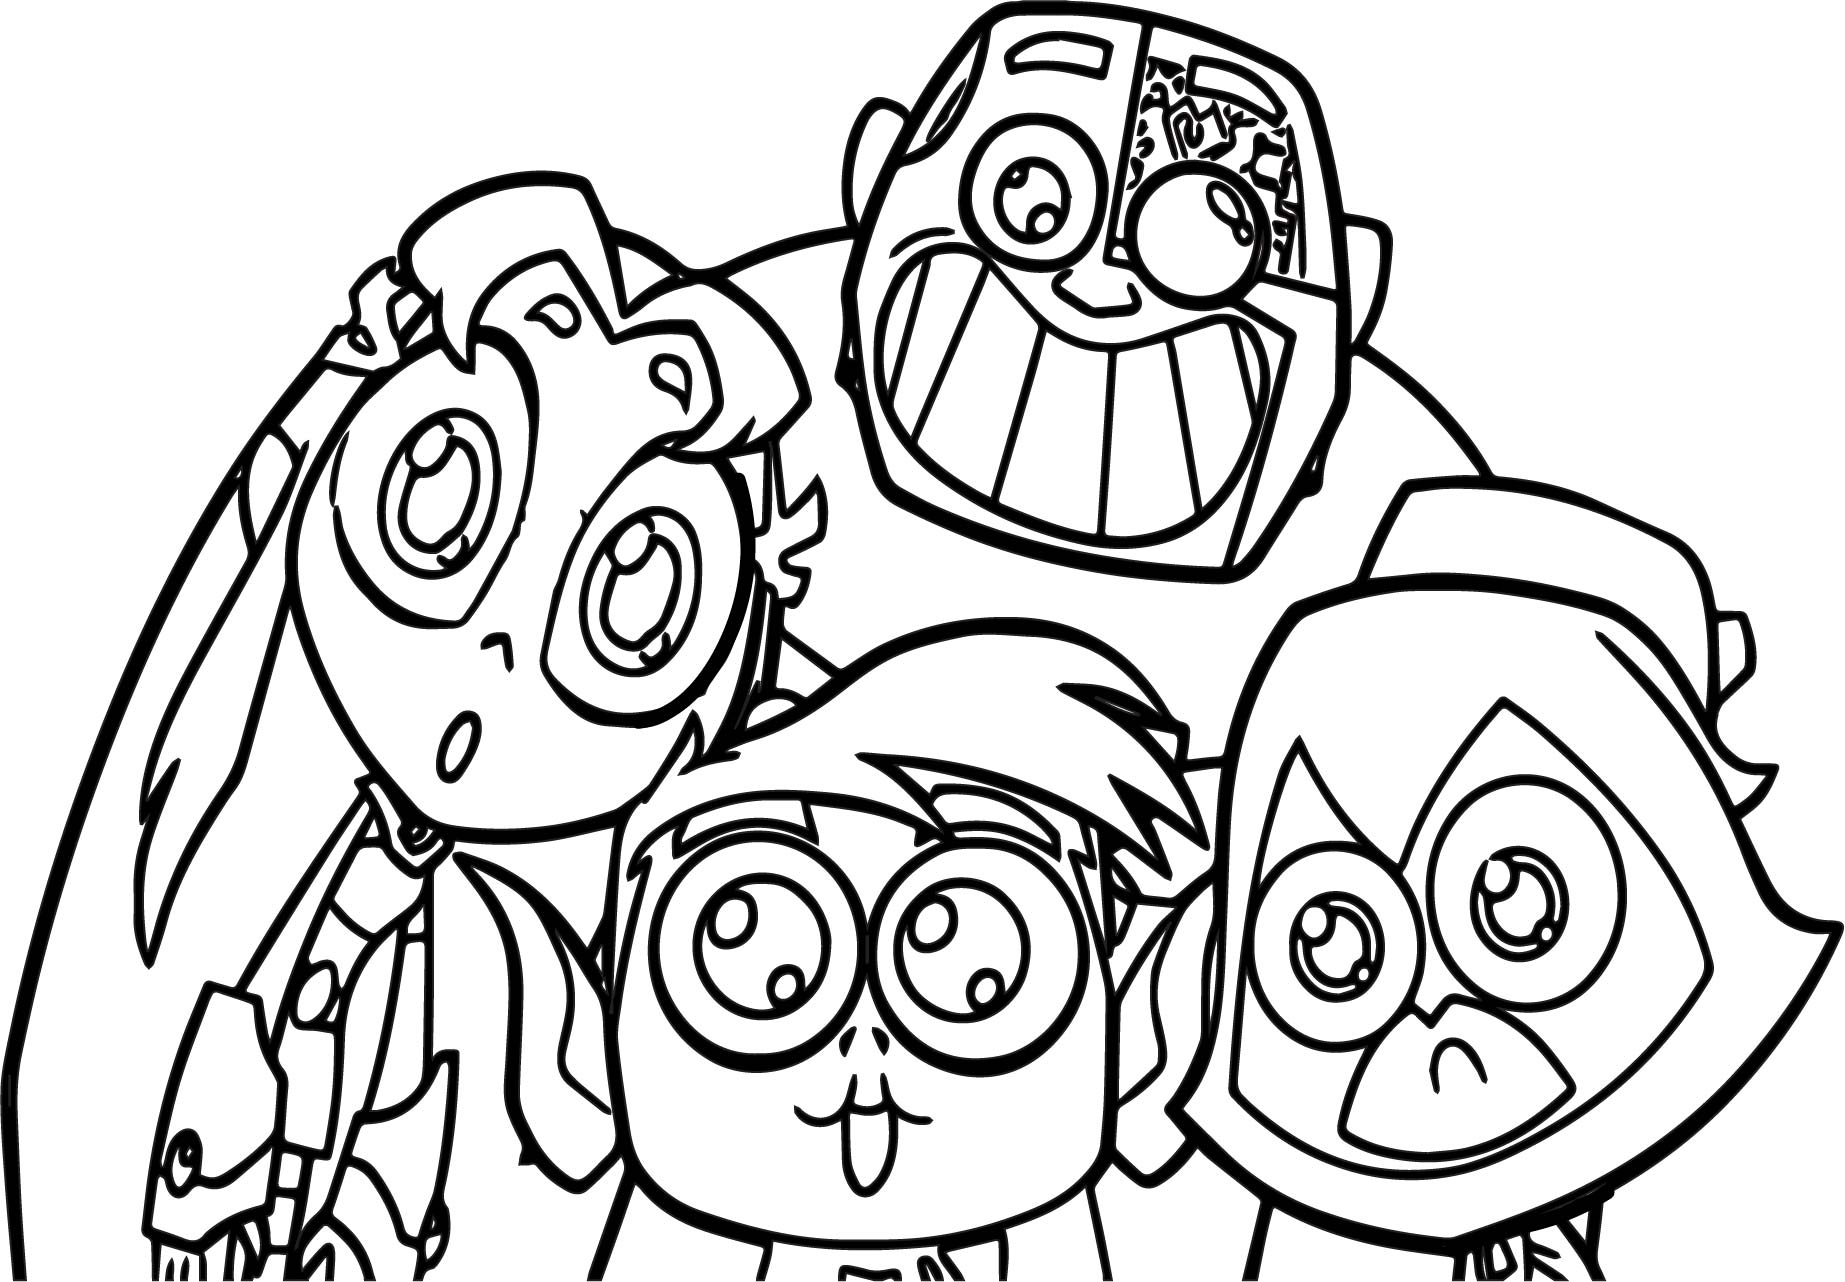 1845x1282 Coloring Cyborg Printable Coloring Pages Also Teen Titans Go